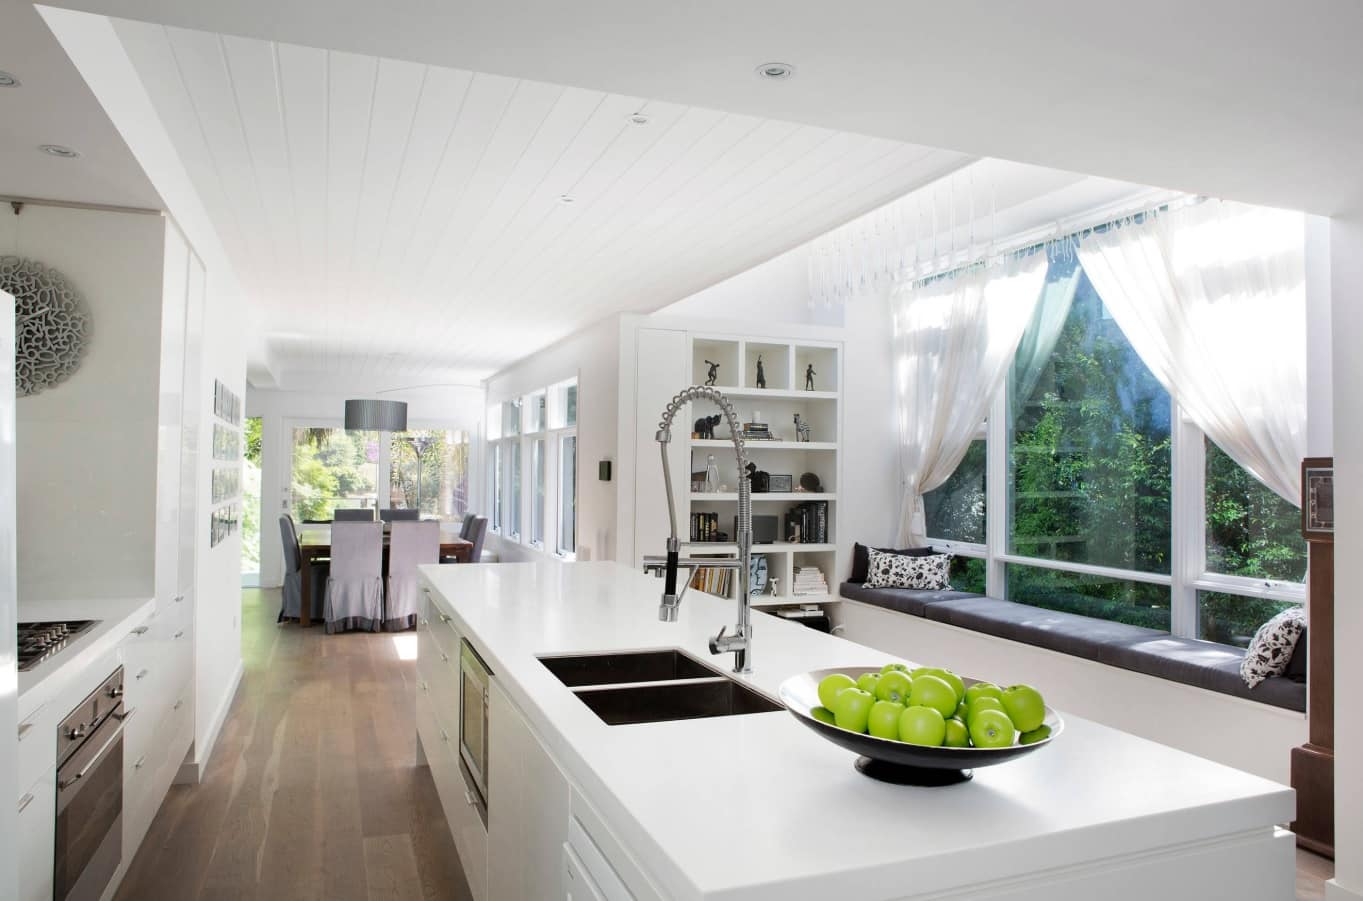 12 Ways You Could Make Your Home More Eco Friendly. White modern kitchen with large island and wooden laminated floor